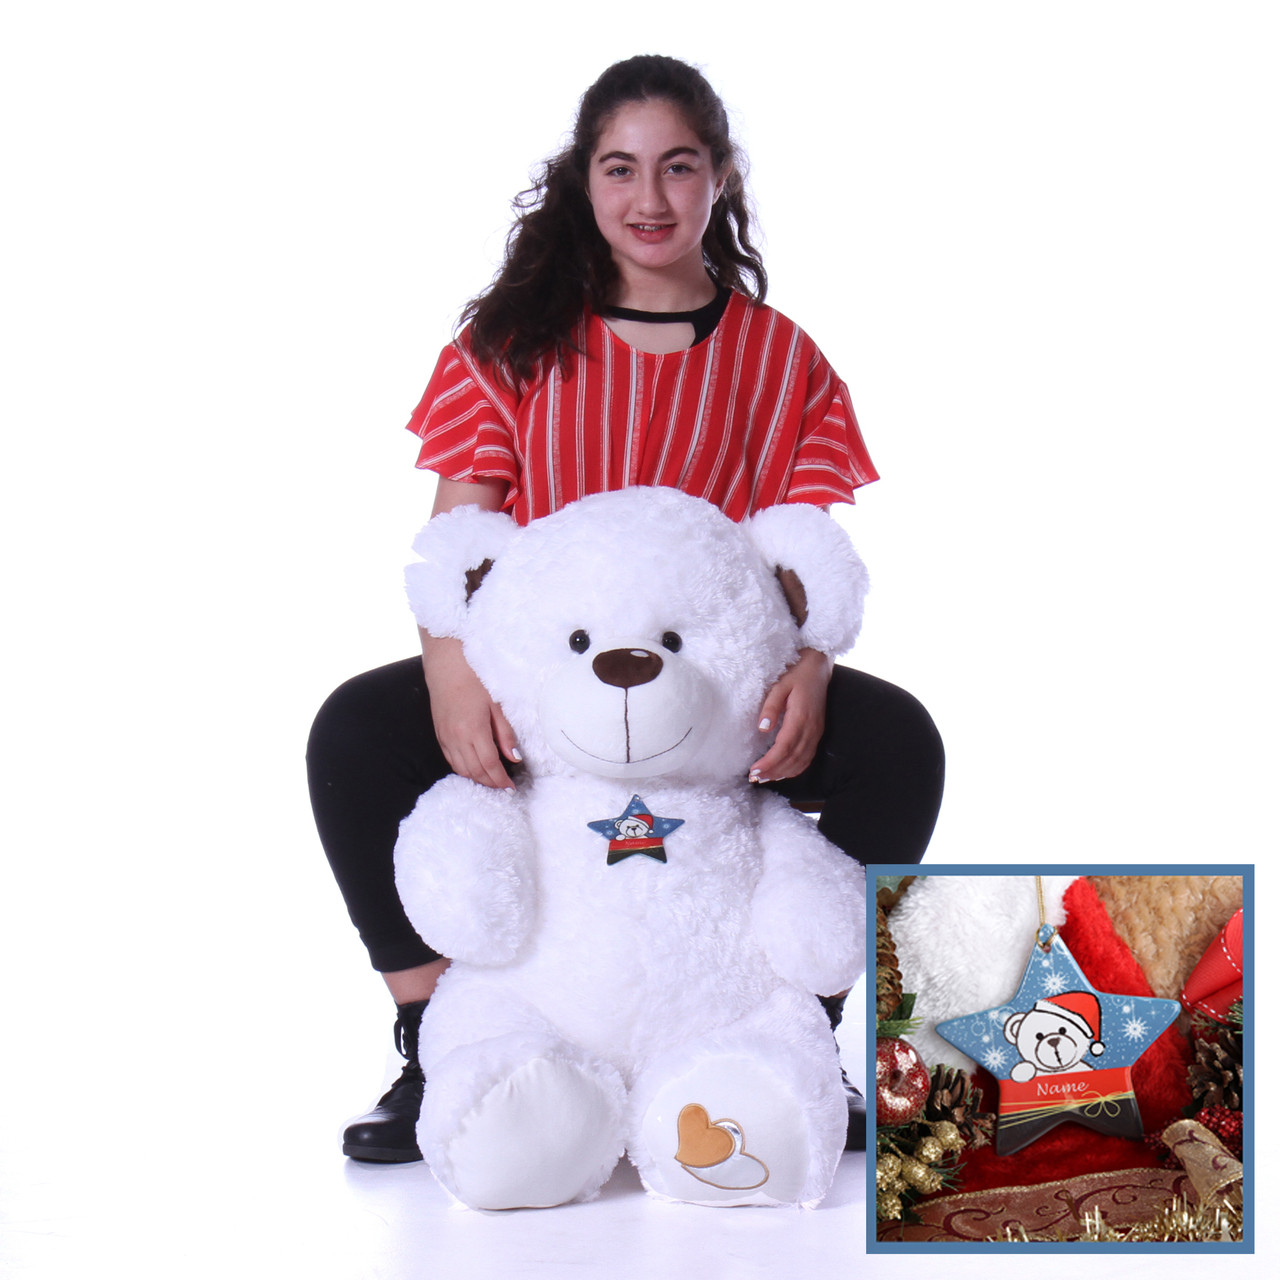 4 Foot White Teddy Bear with Personalized Star Ornament - Unique Christmas Present